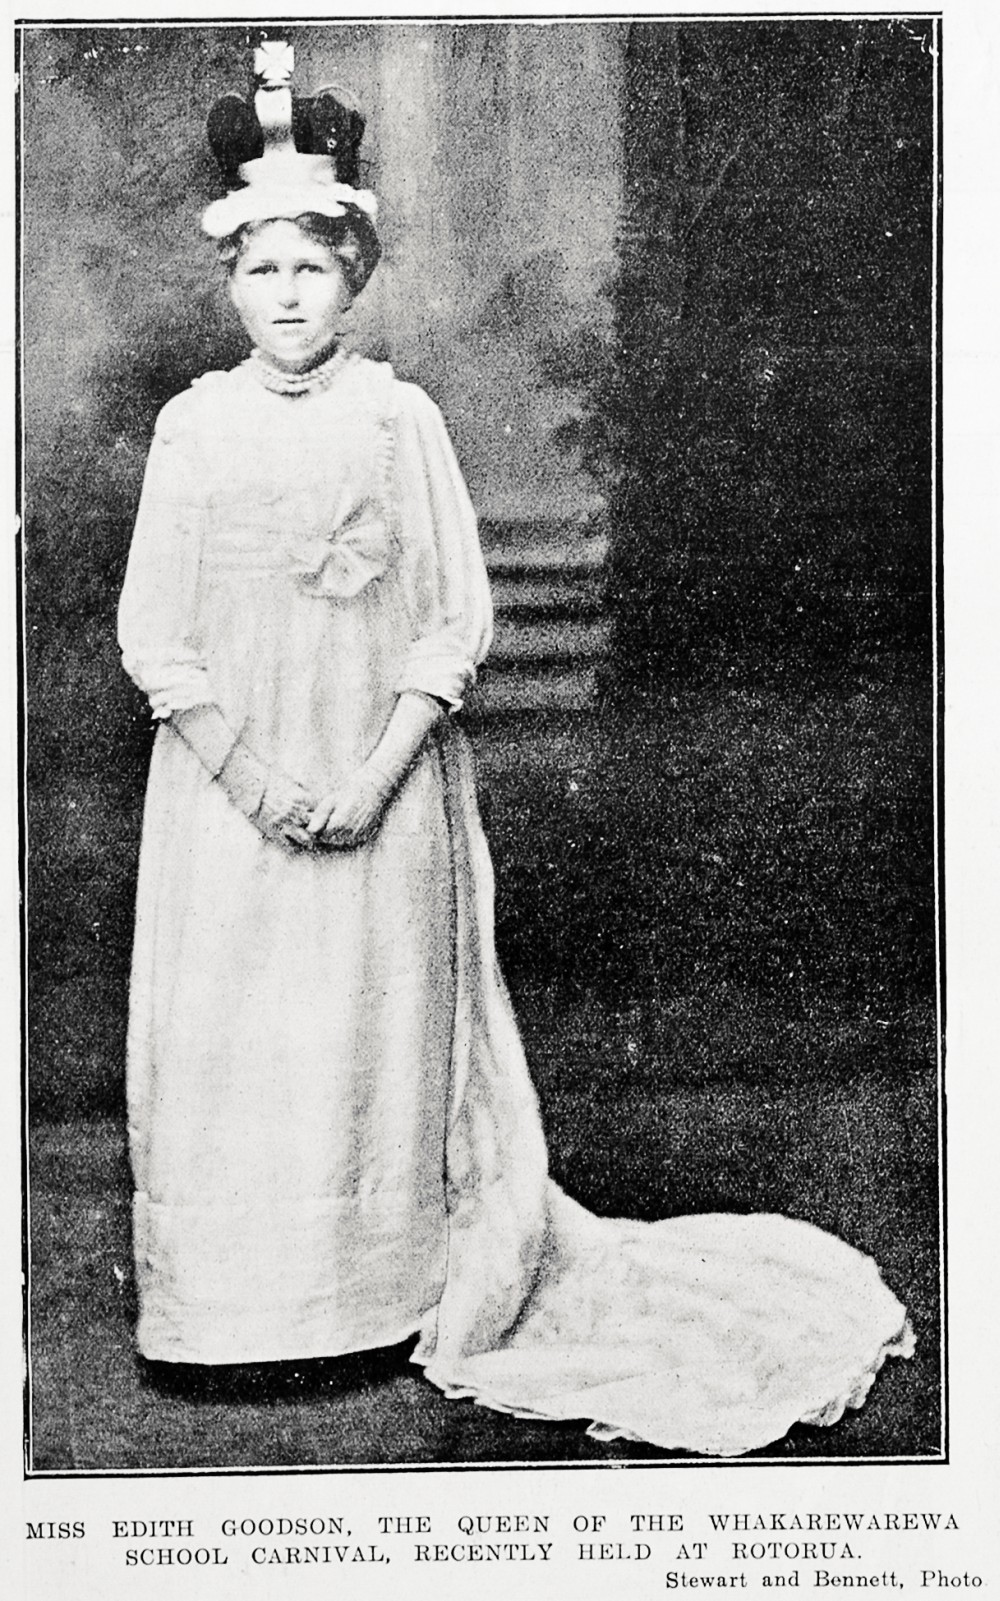 Miss Edith Goodson, the queen of the Whakarewarewa school carnival, recently held at Rotorua. - Auckland Libraries